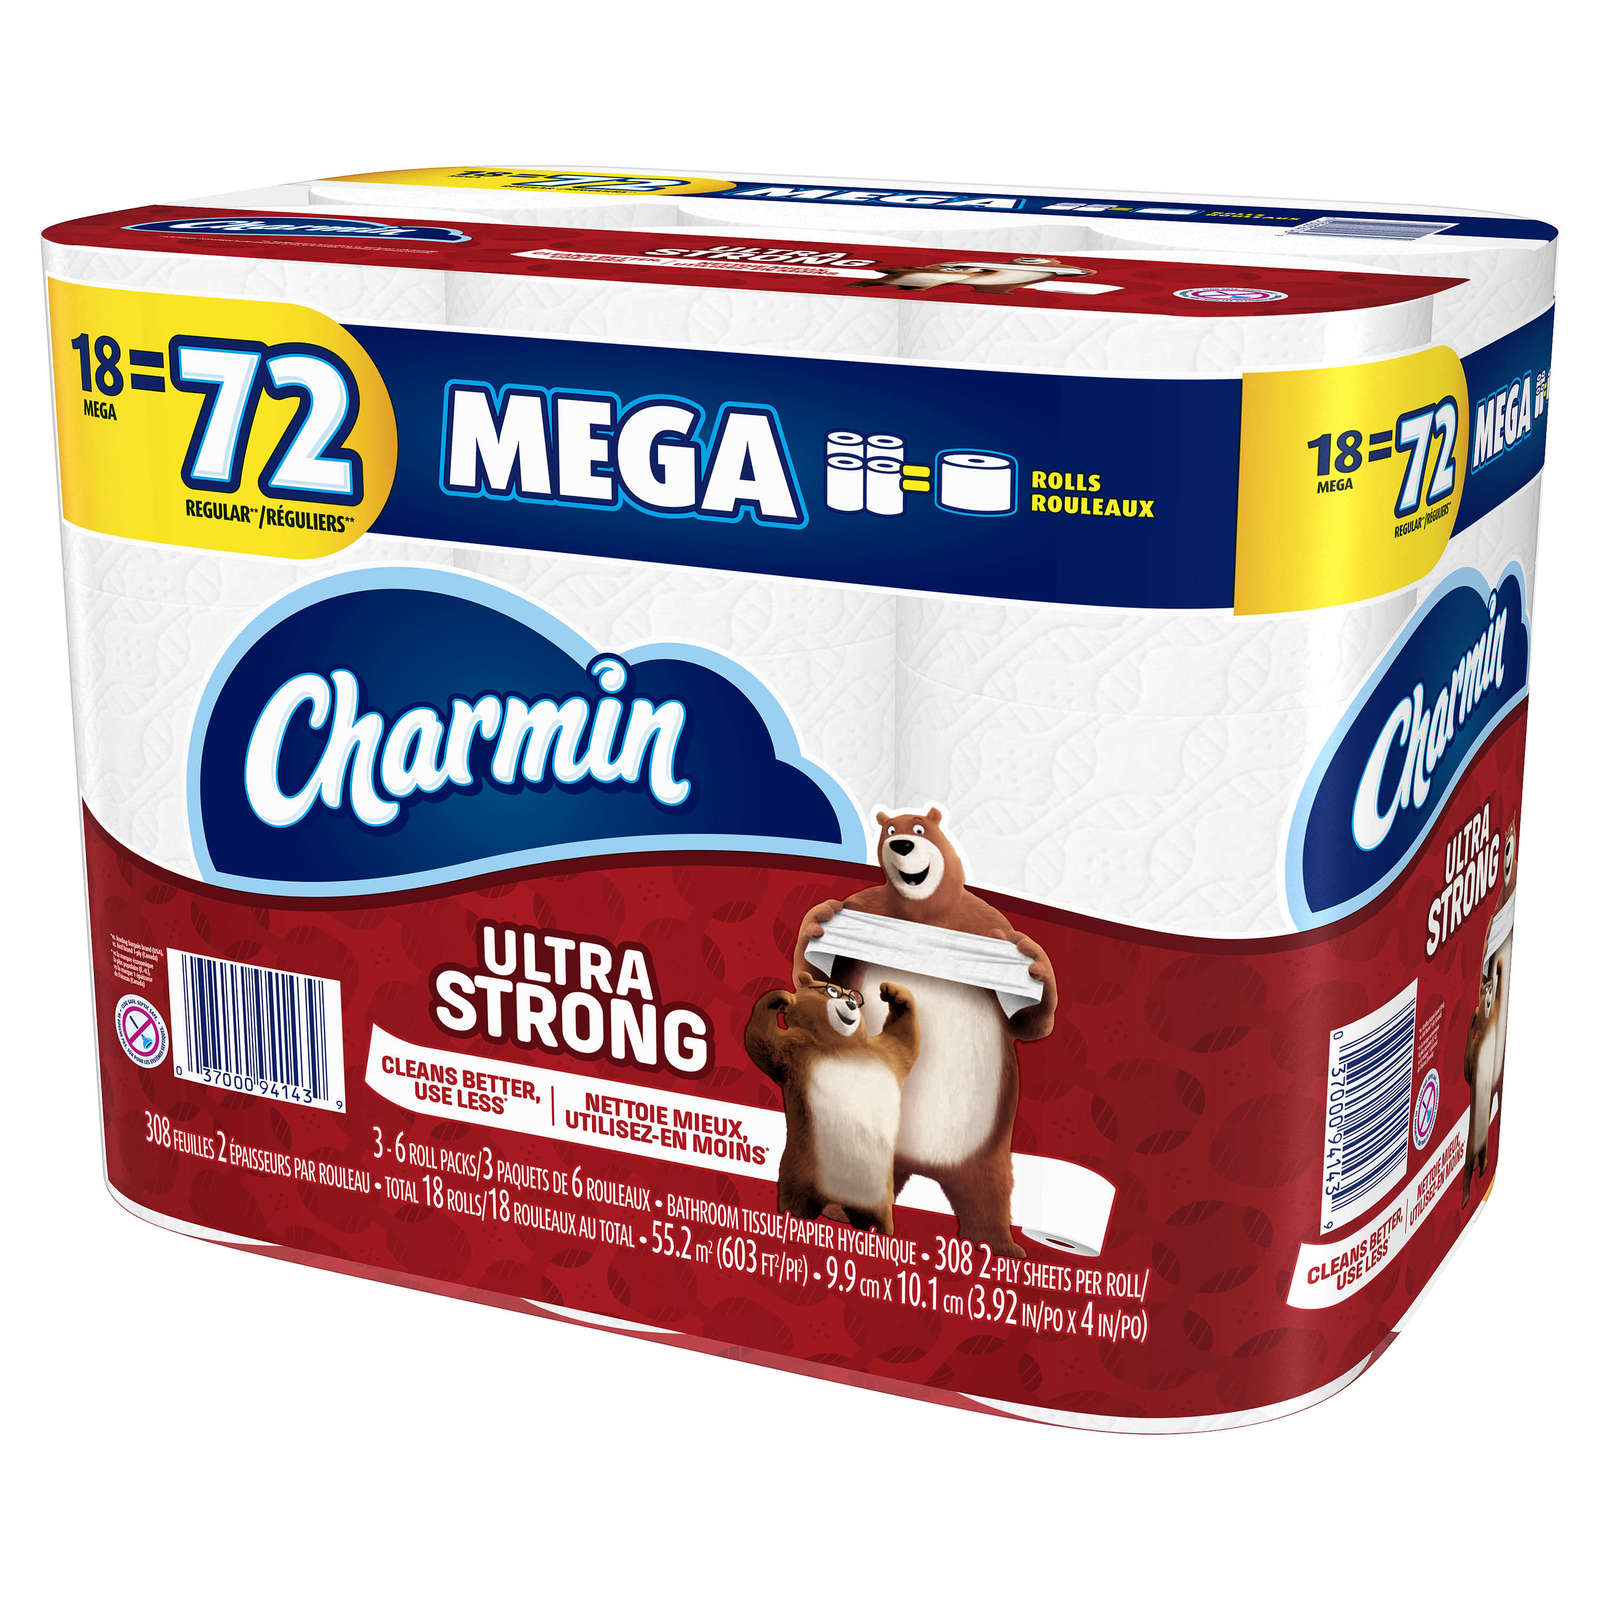 Primary image for CHARMIN ULTRA STRONG TOILET PAPER 18 MEGA ROLLS = 72 REGULAR ROLLS PACK